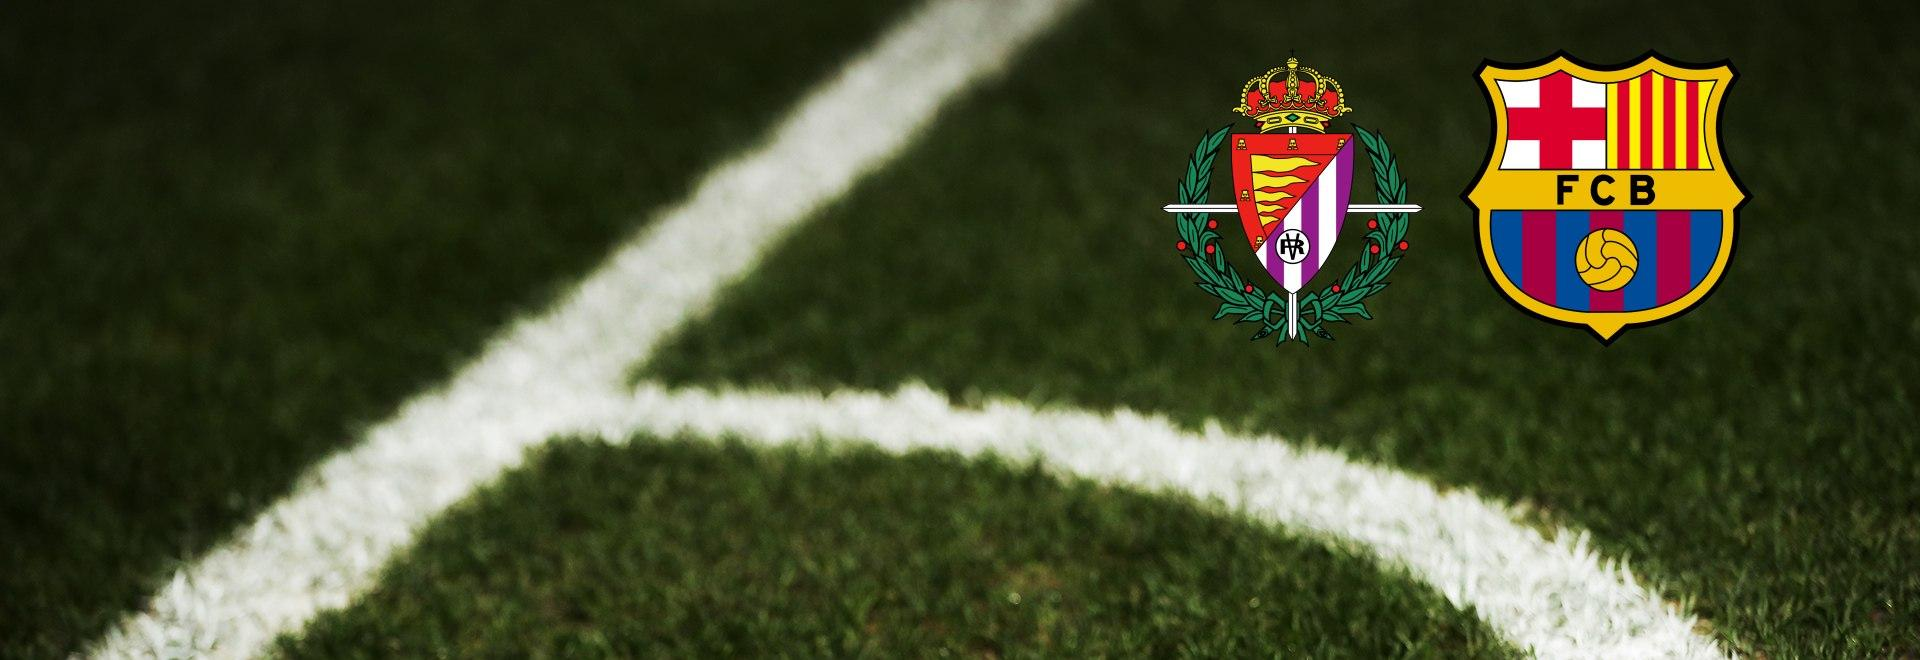 Real Valladolid - Barcelona. 15a g.